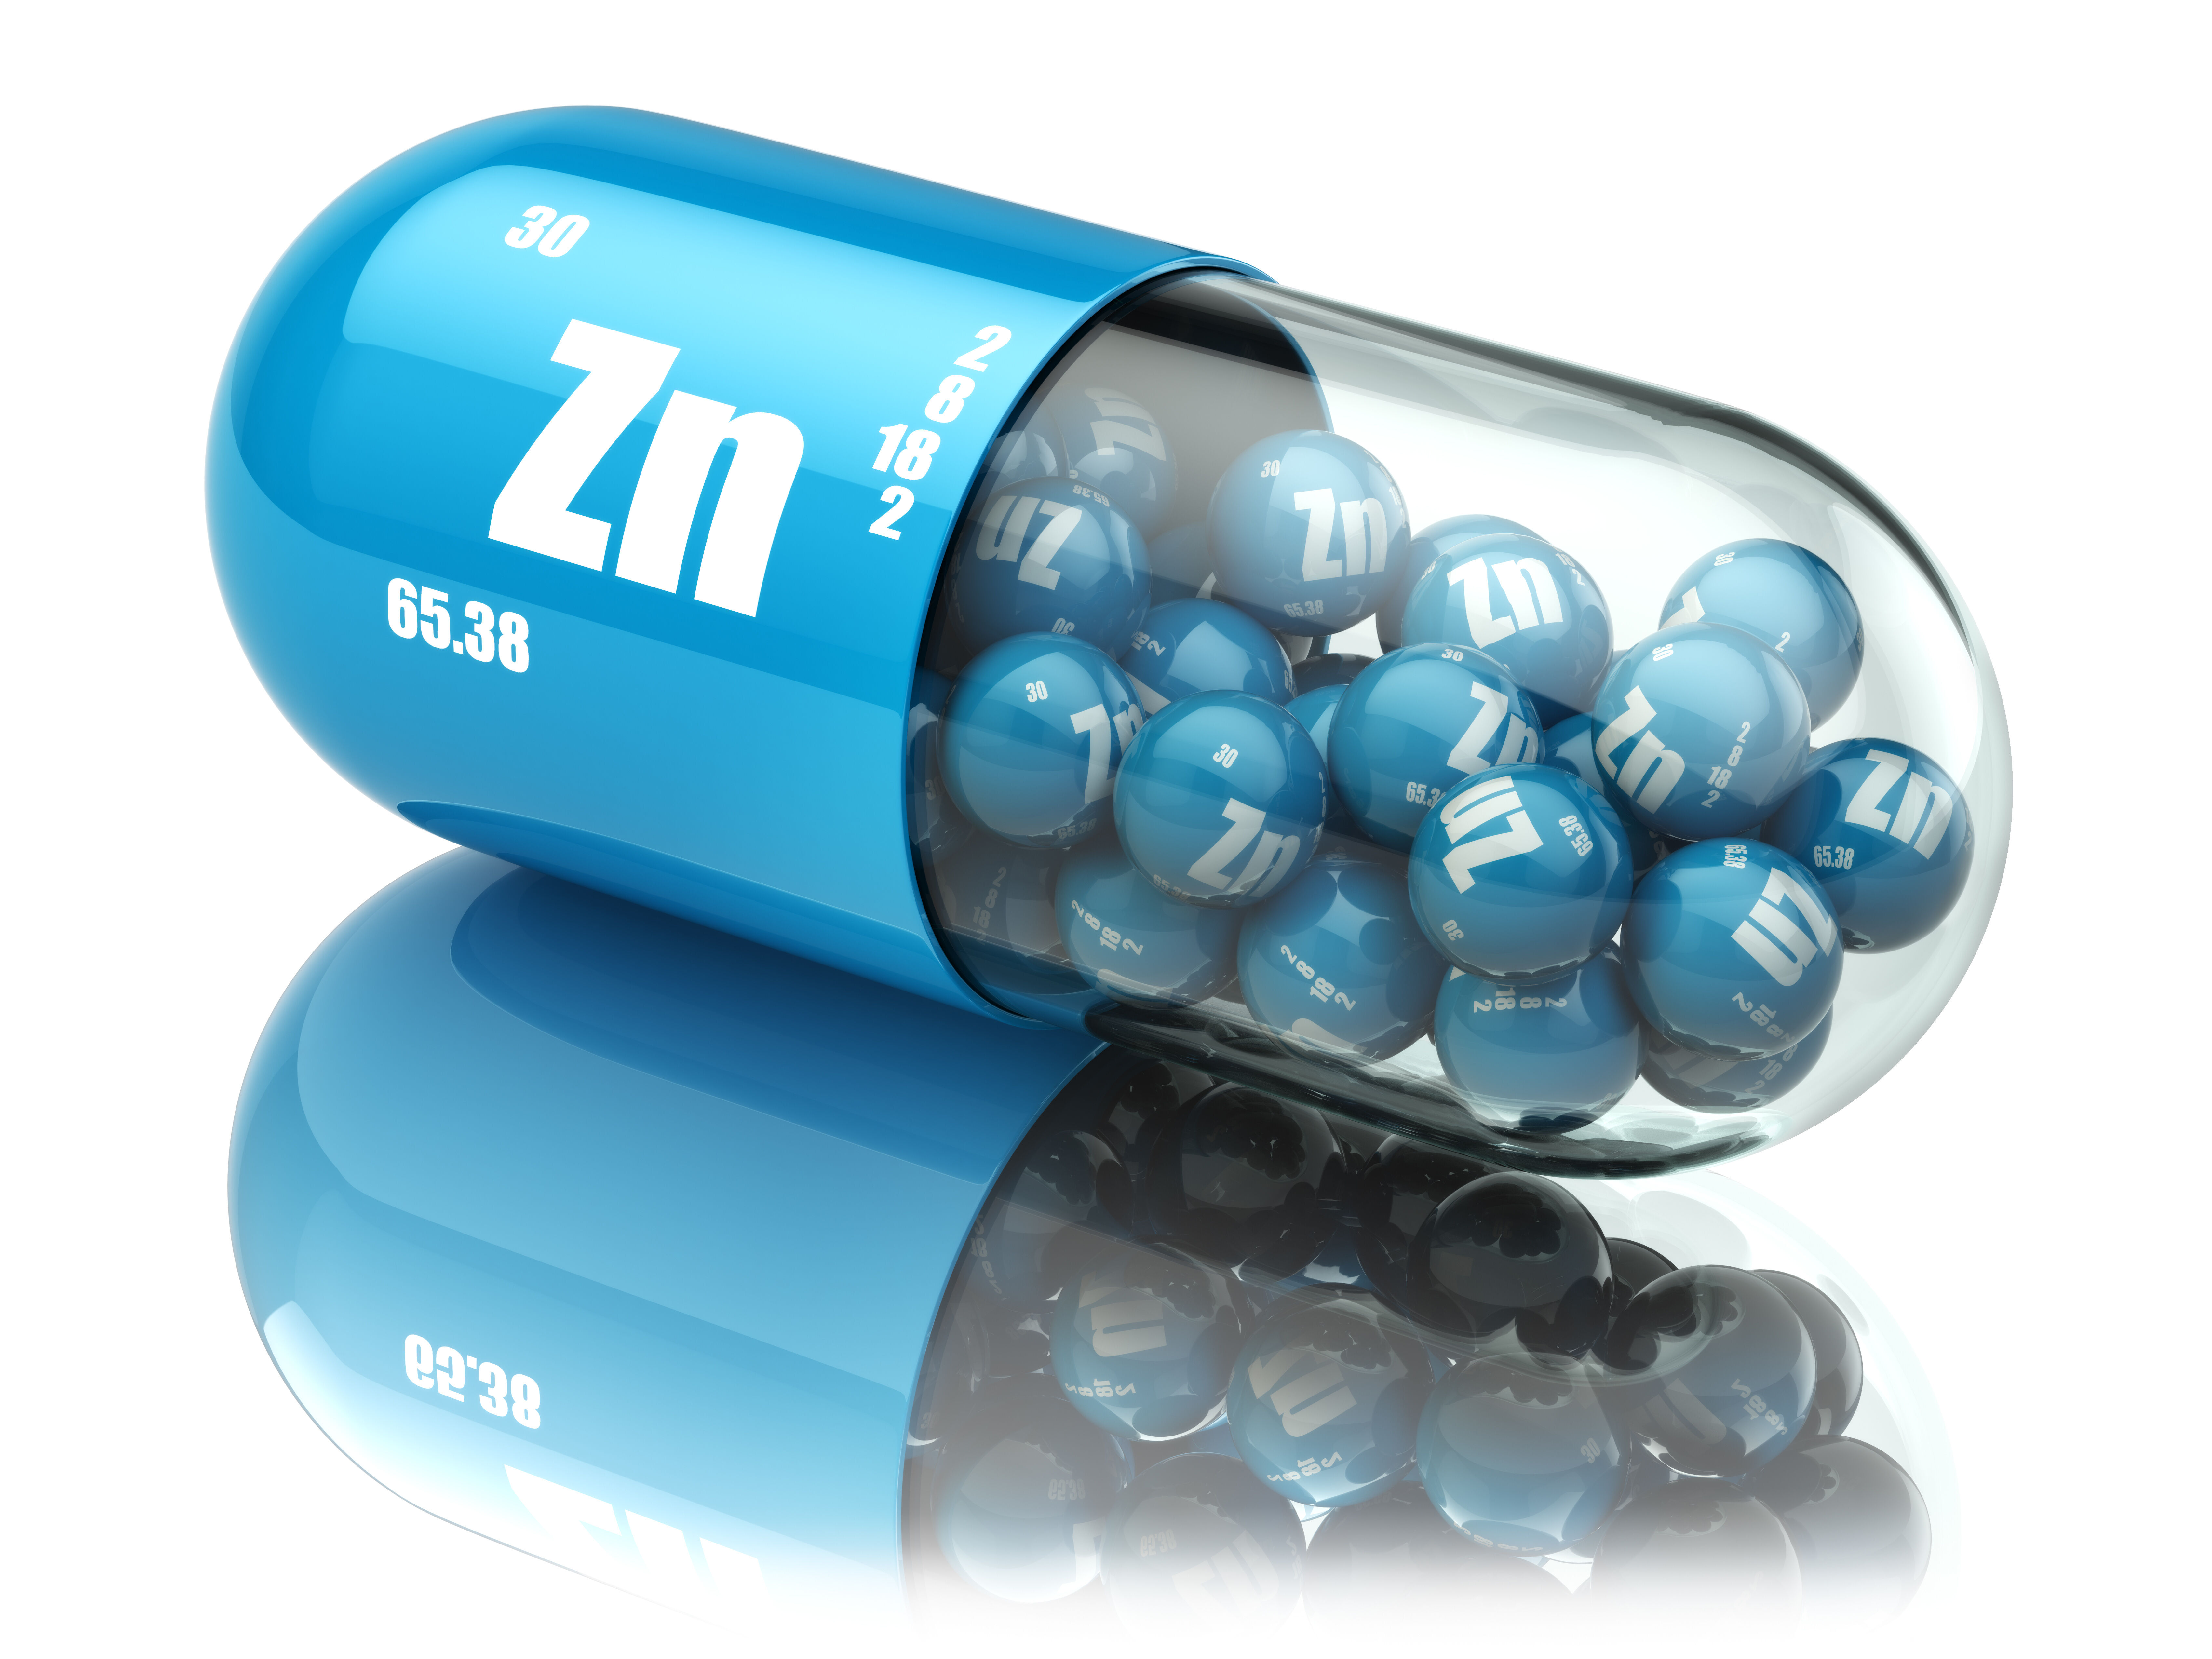 Zinc is important for eye health